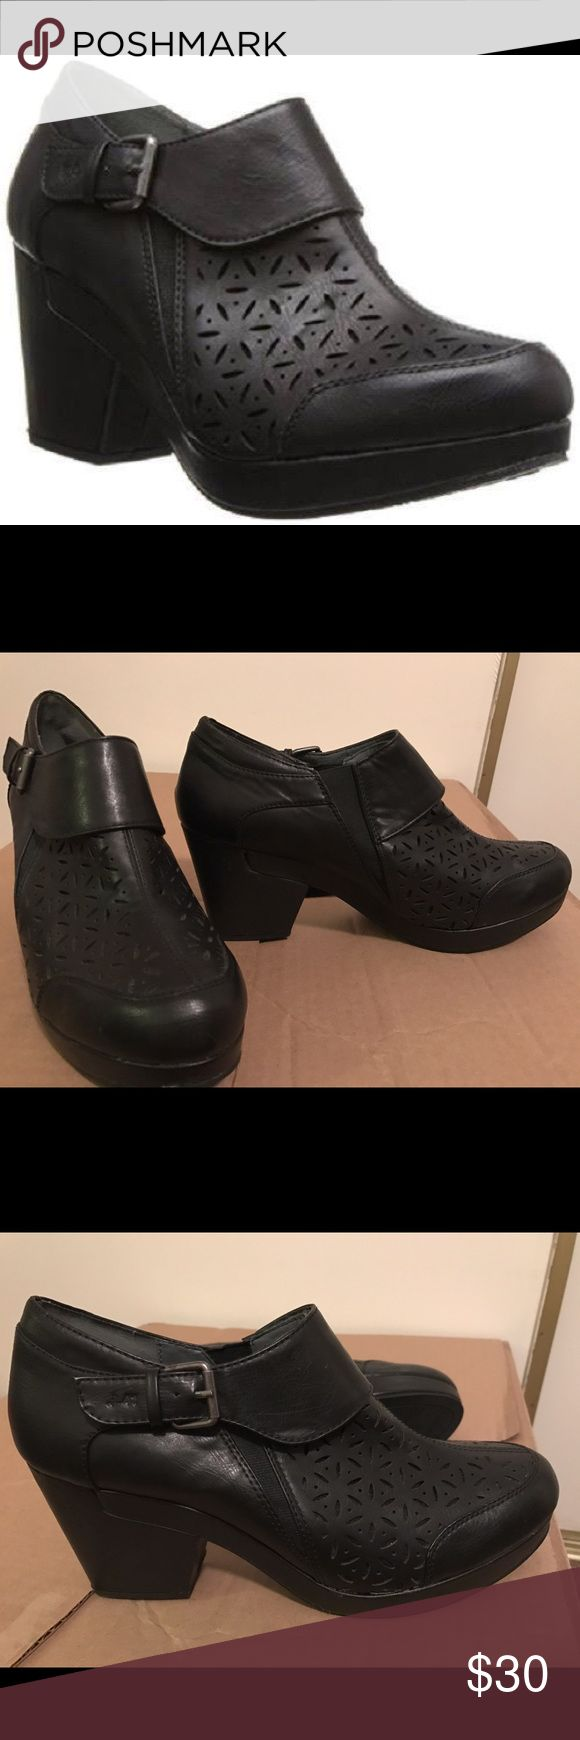 """J-41 Susie mule shoes J-41 Womens Susie Perforated Ankle Boot Mules Black Size 11 M Description J-41 Women's Susie Mules Man-Made/Synthetic Synthetic sole Heel measures approximately 2.75""""Platform measures approximately 0.75""""Decorative buckle. I tired them on and they did not fit my feet right. My feet are a little too wide for them. J-41 Shoes Mules & Clogs"""